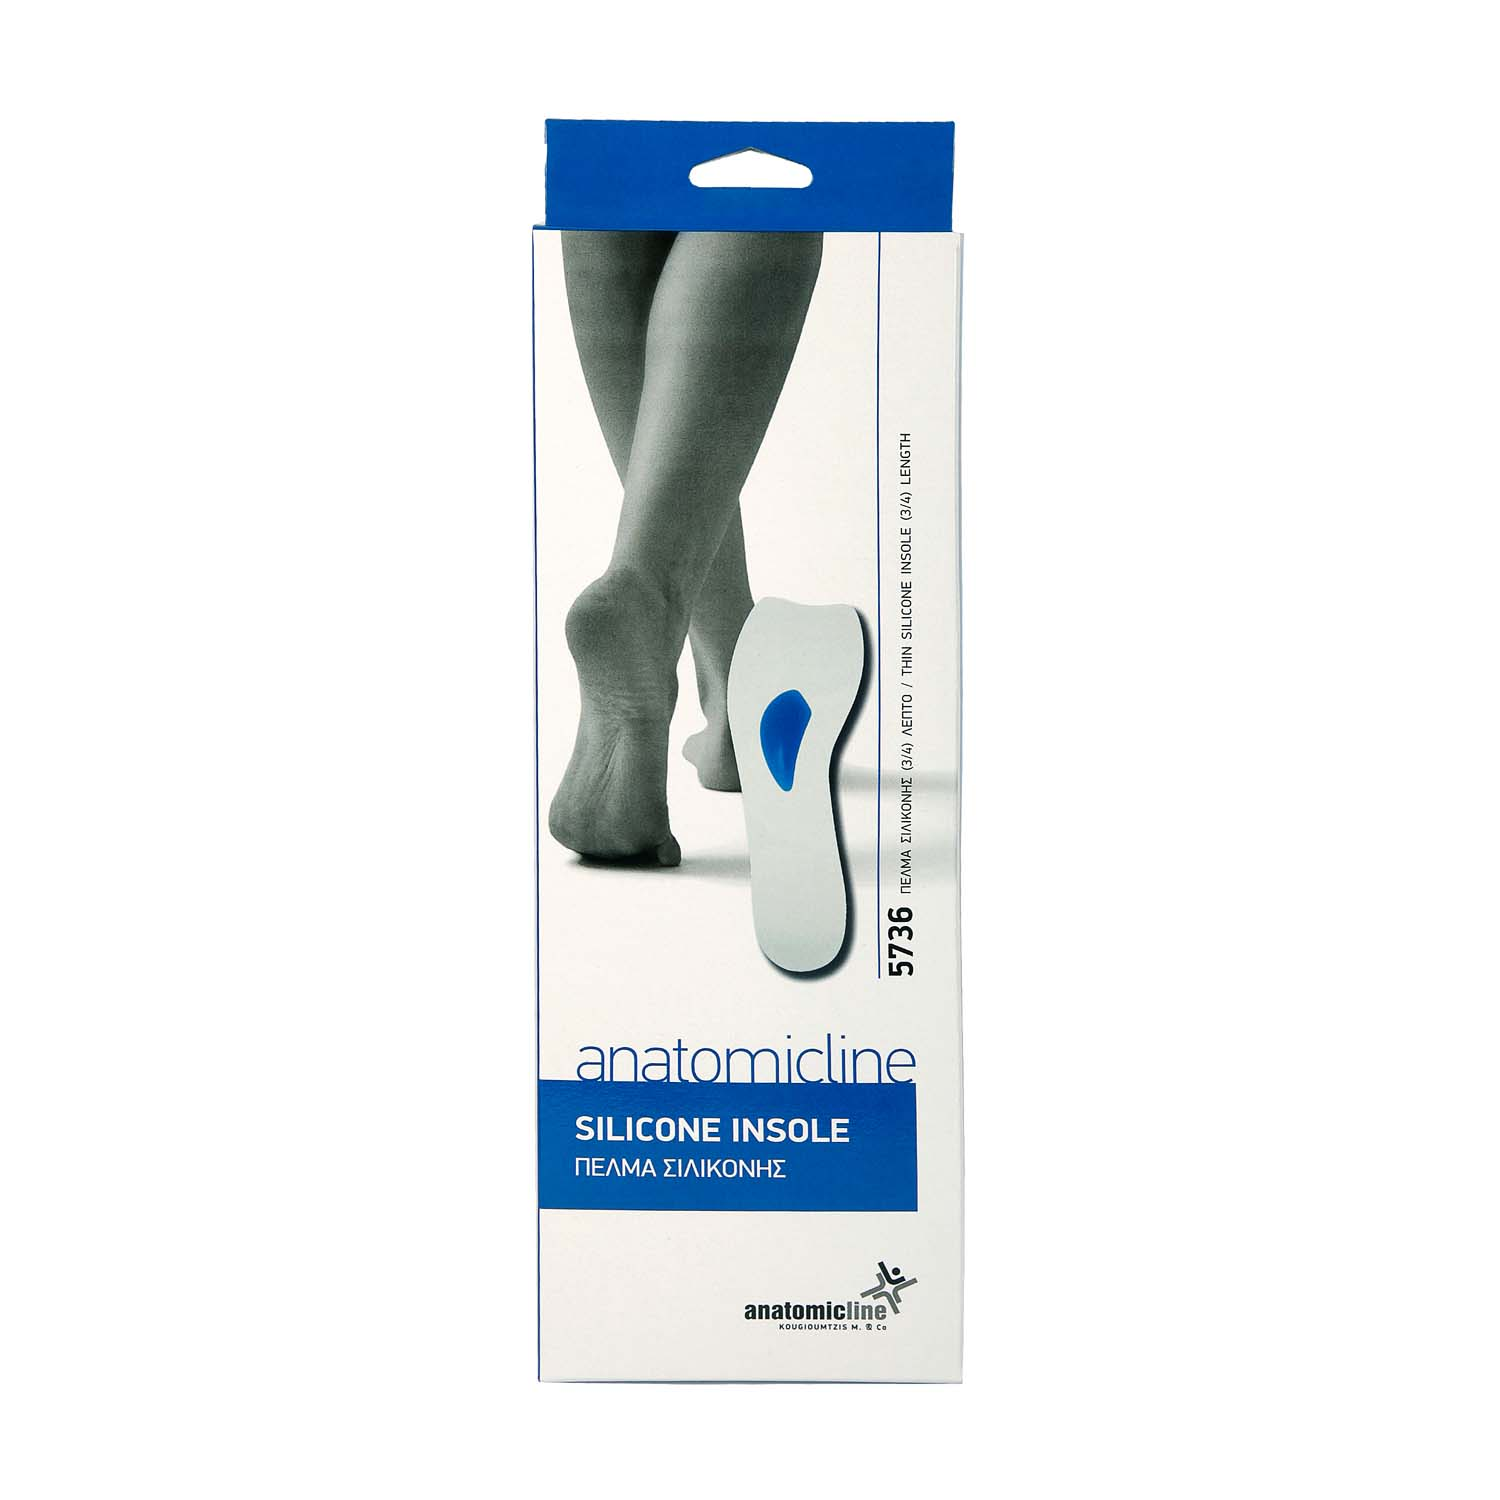 Thin Silicone insole - ¾ length